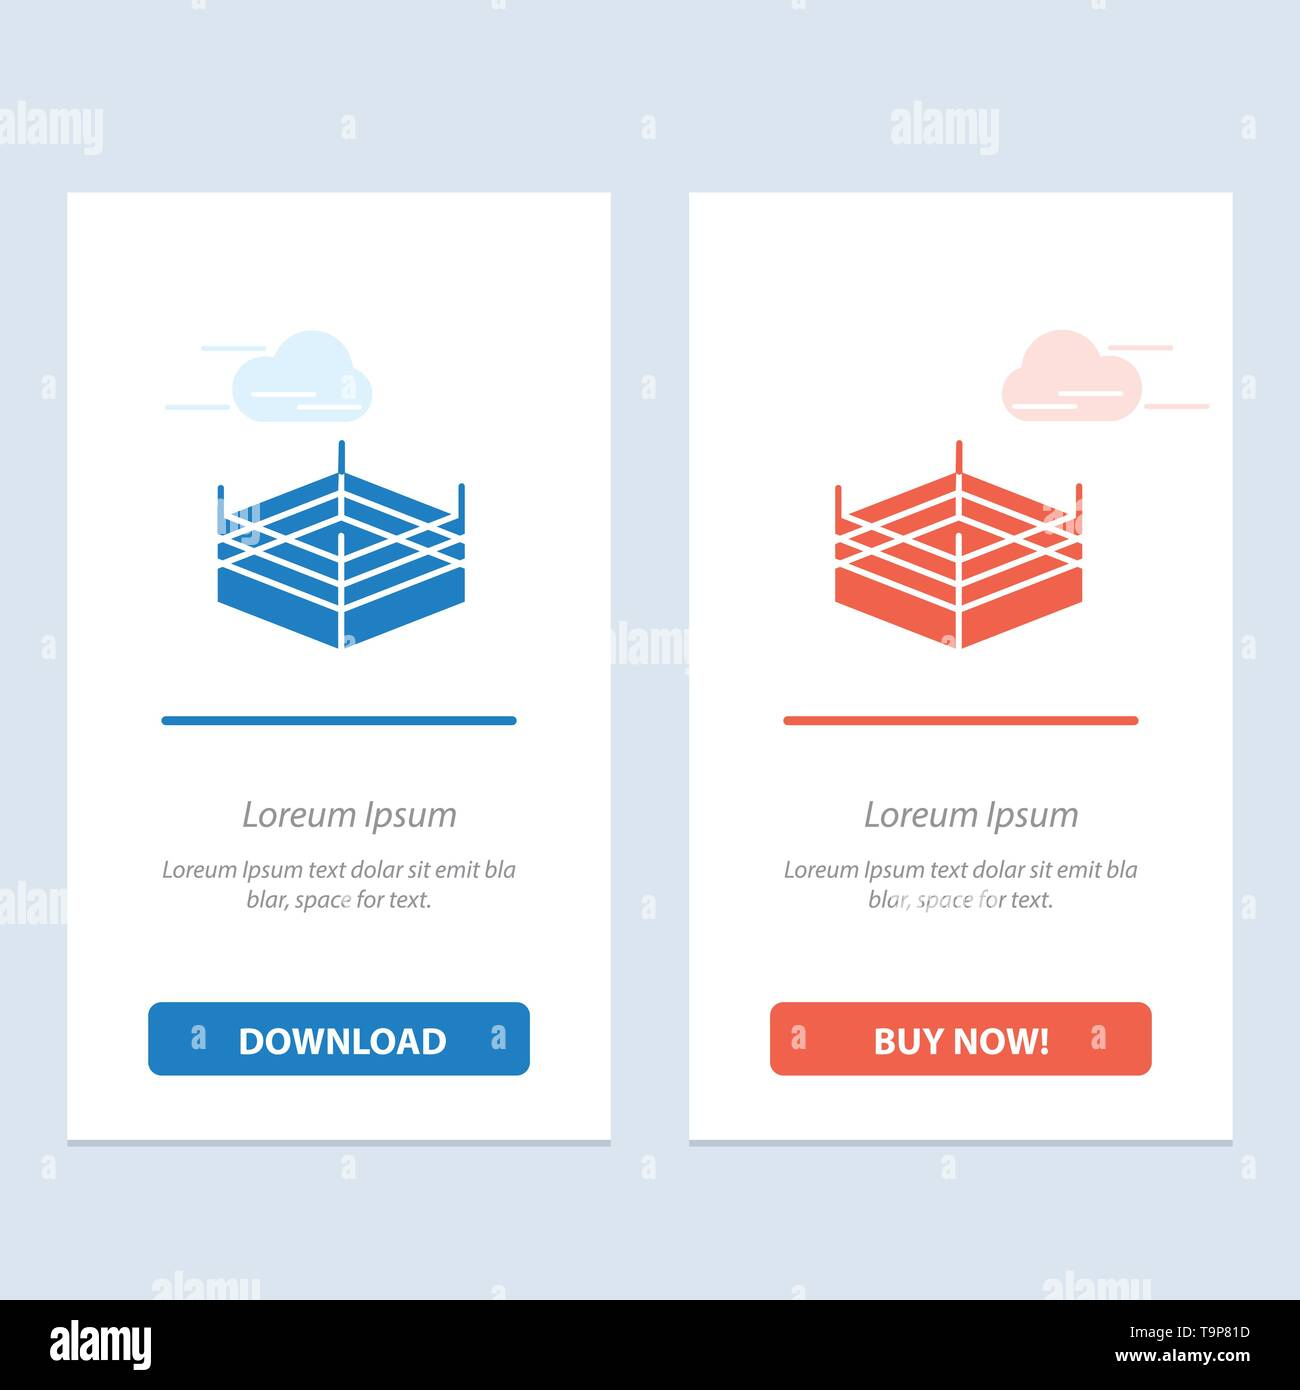 Boxing, Ring, Wrestling  Blue and Red Download and Buy Now web Widget Card Template - Stock Image